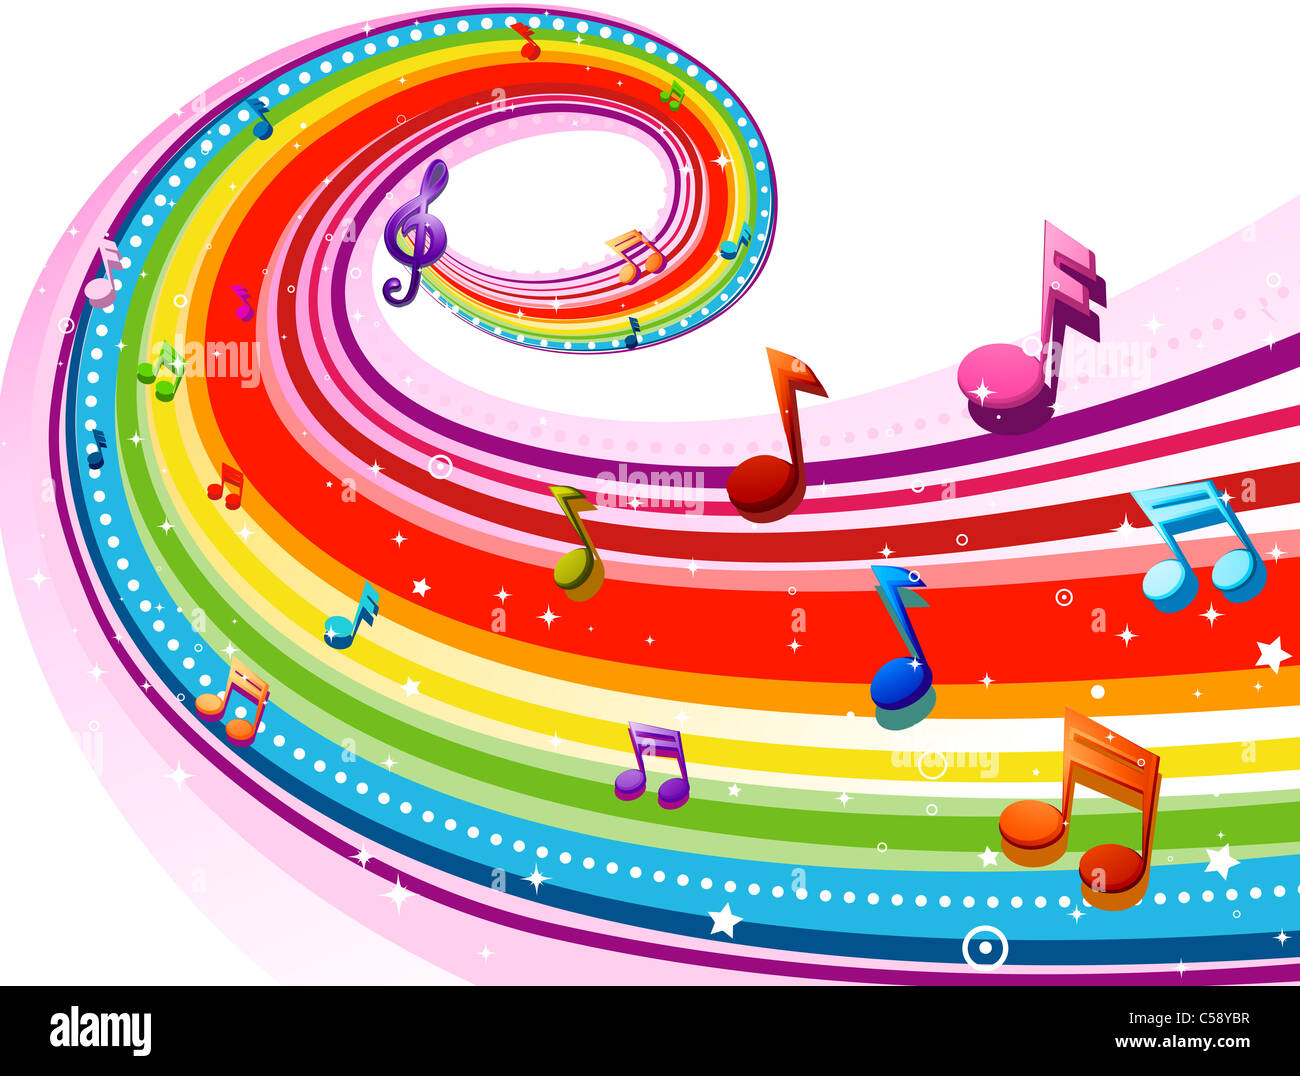 Rainbow Notes On Light Background Stock: Rainbow-Colored Rainbow Design With Musical Notes Against